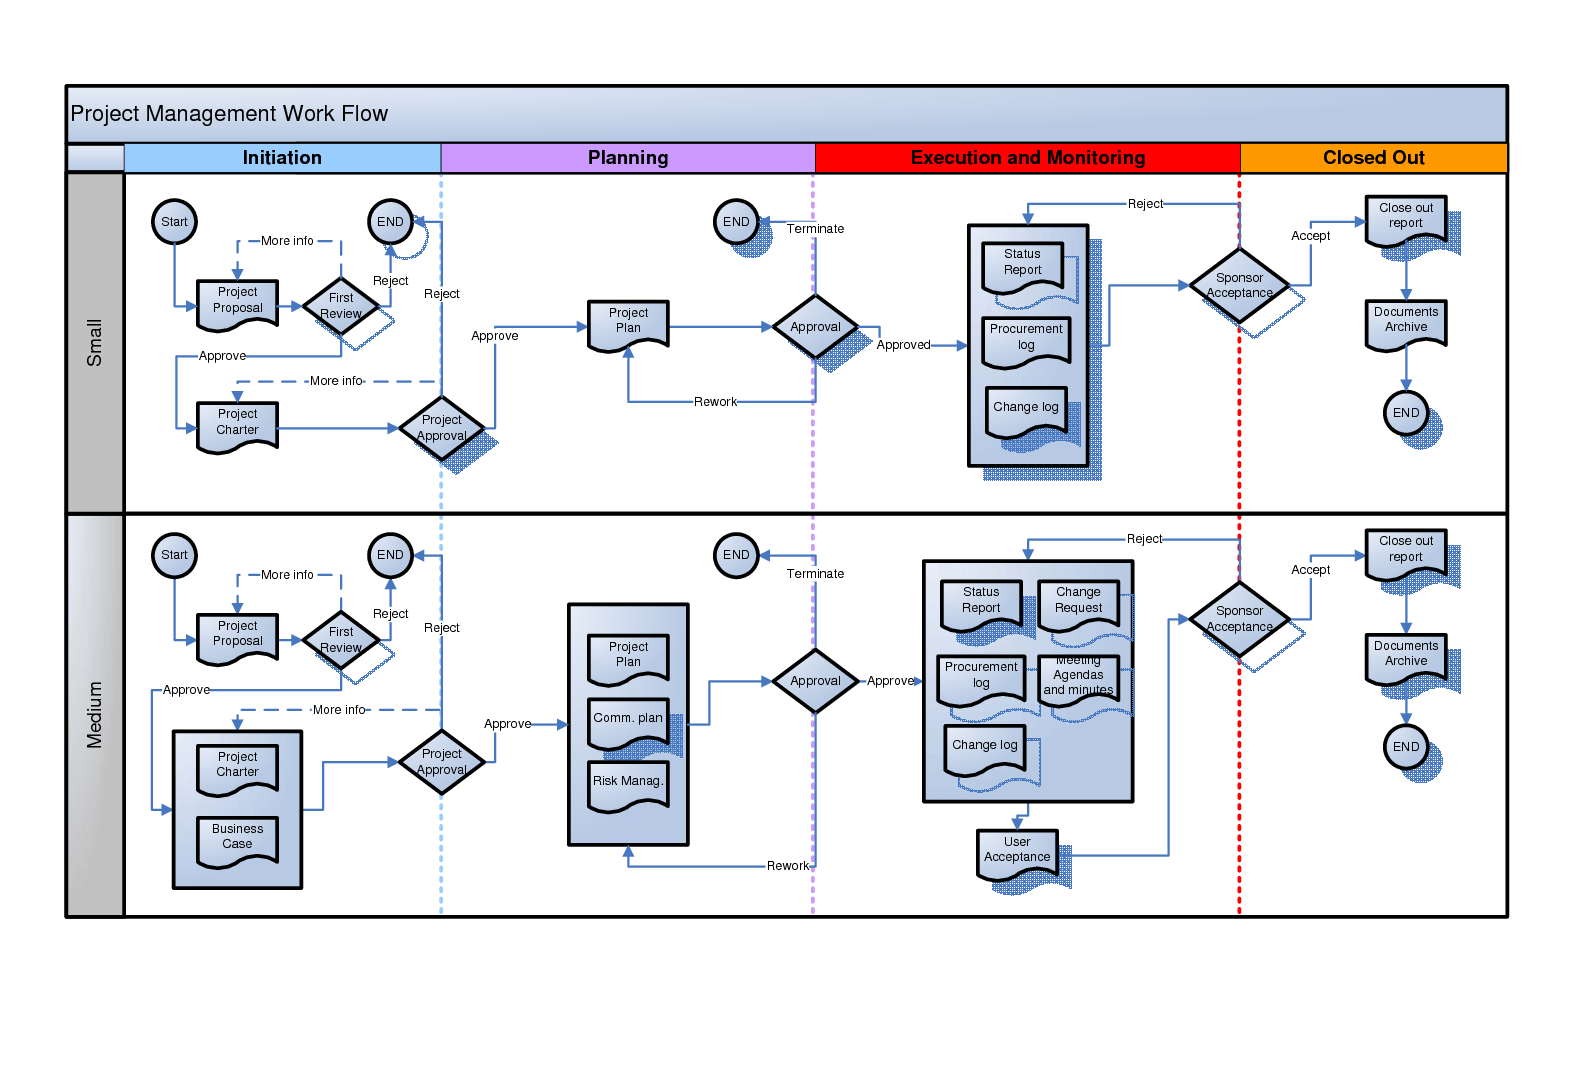 Create professional visio diagrams and process flows by mmendez rh fiverr com business flow diagram also examples best wiring library incestaash